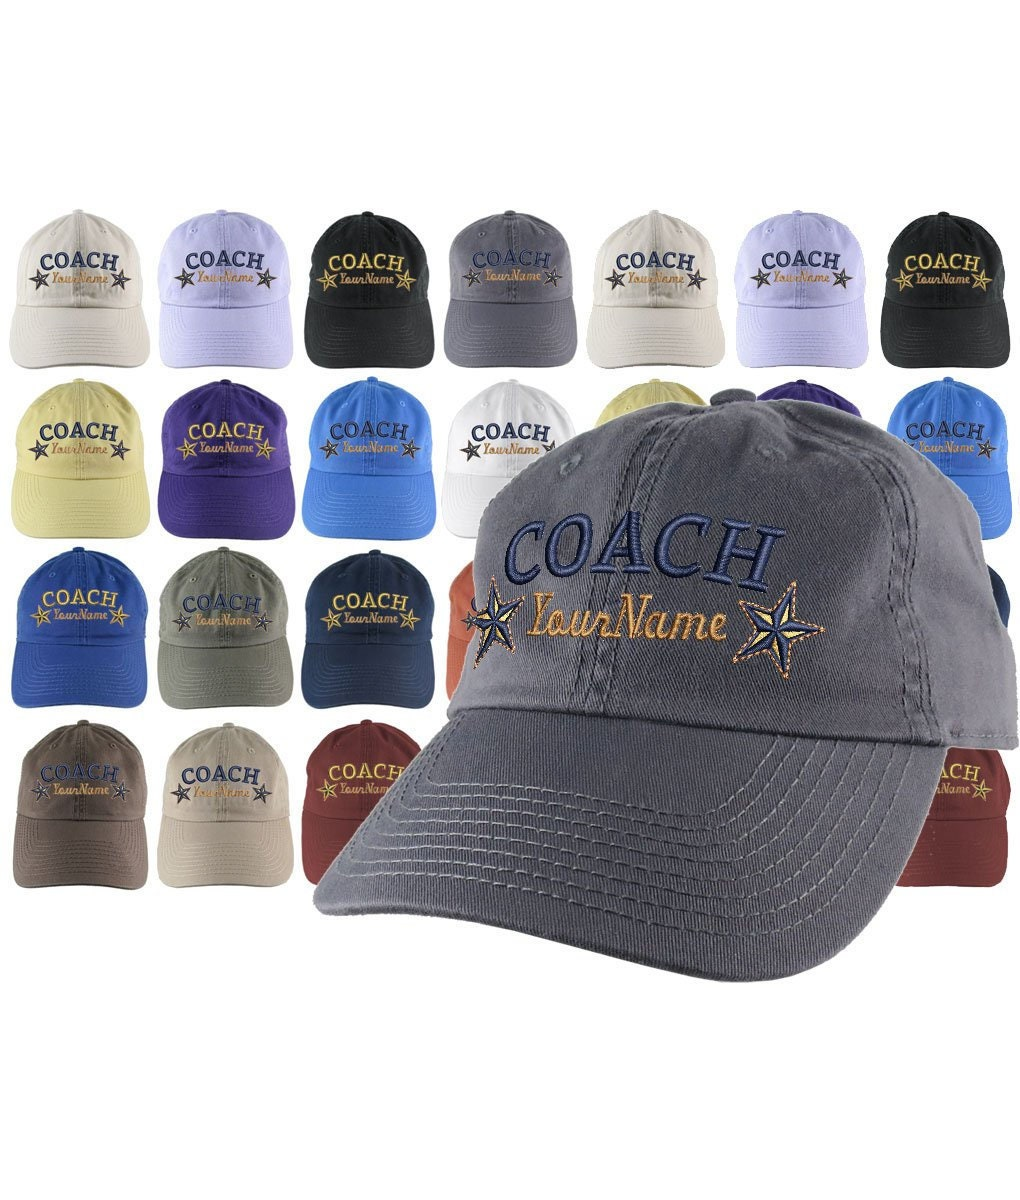 Custom Personalized Coach Name Stars Embroidery on Your Selection of  Adjustable Unstructured Baseball Cap Dad Hat + Option Back Embroidery 995c5eb9c56